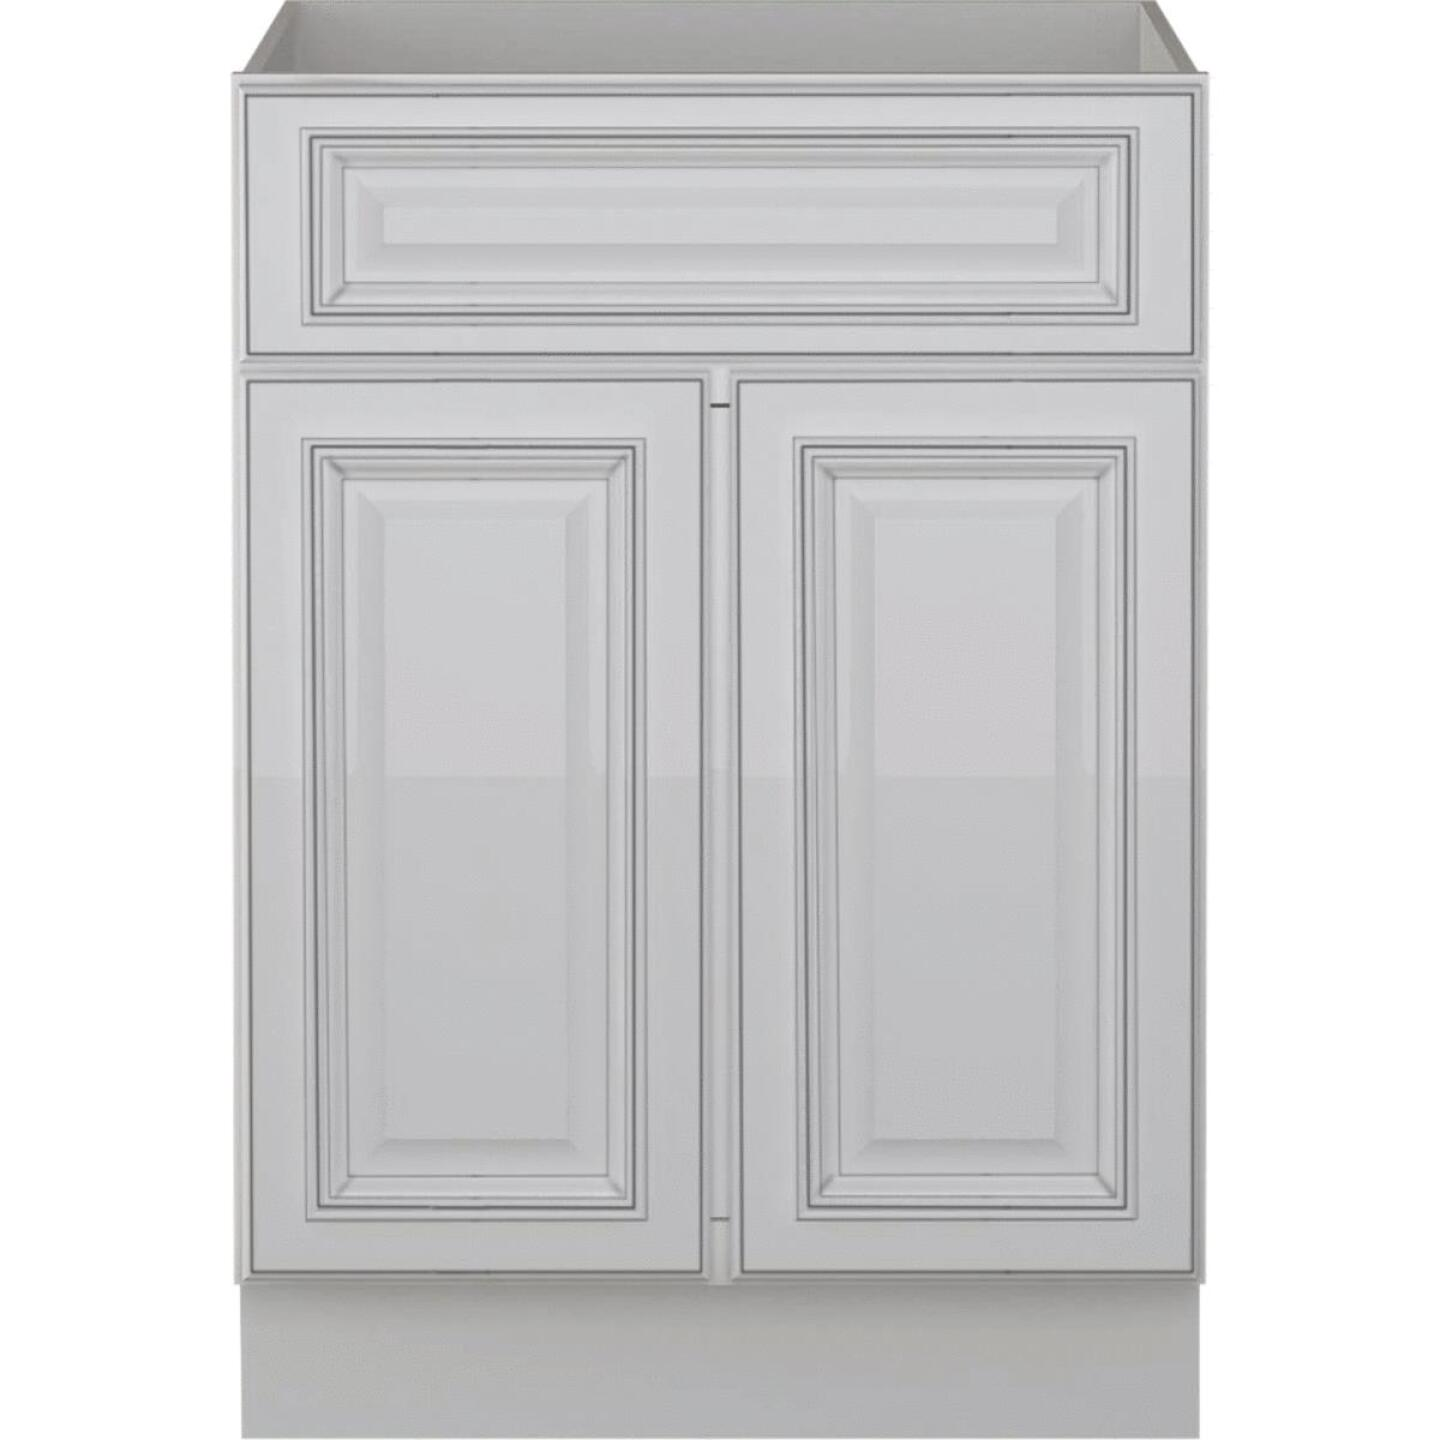 Sunny Wood Riley White with Dover Glaze 24 In. W x 34-1/2 In. H x 21 In. D Vanity Base, 2 Door Image 1